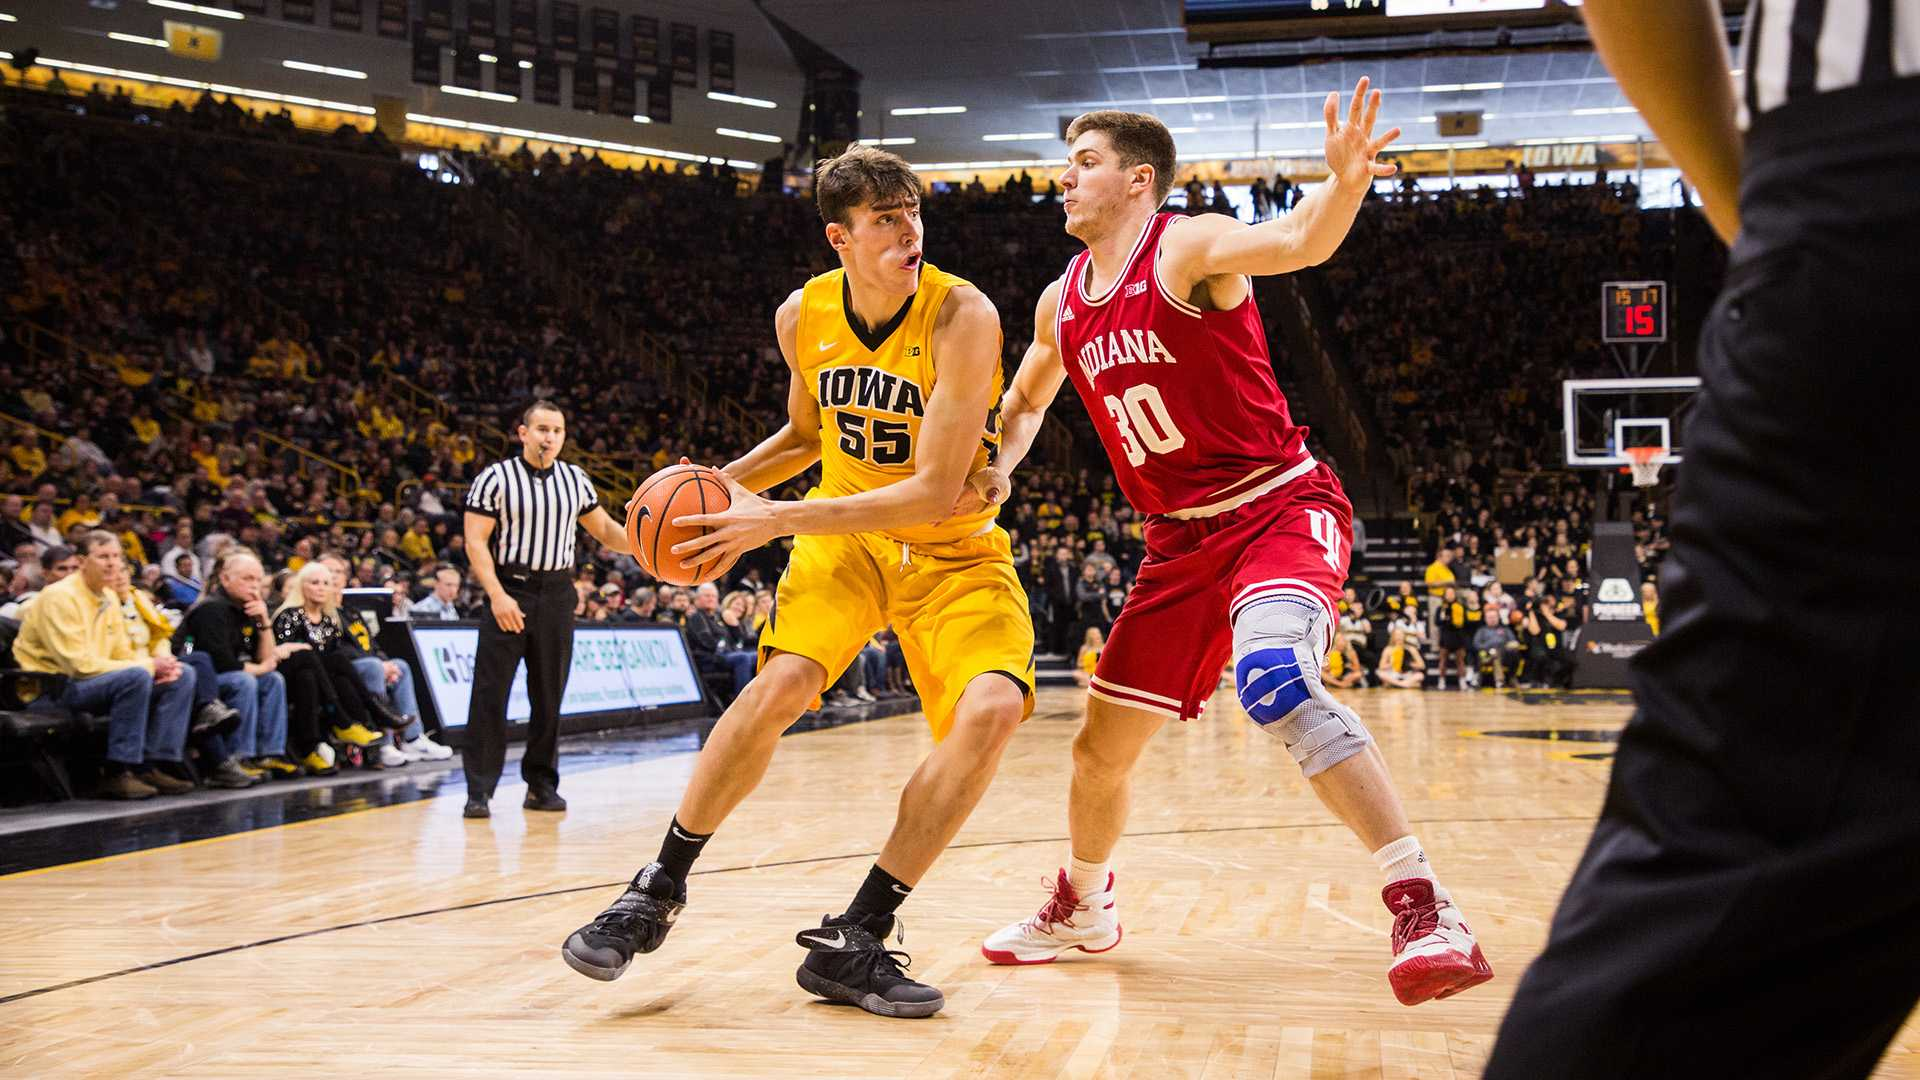 Iowa forward Luka Garza controls the ball during a game against Indiana University at Carver-Hawkeye Arena on Saturday, Feb. 17, 2018. The Hoosiers defeated the Hawkeyes 84 to 82. (David Harmantas/The Daily Iowan)